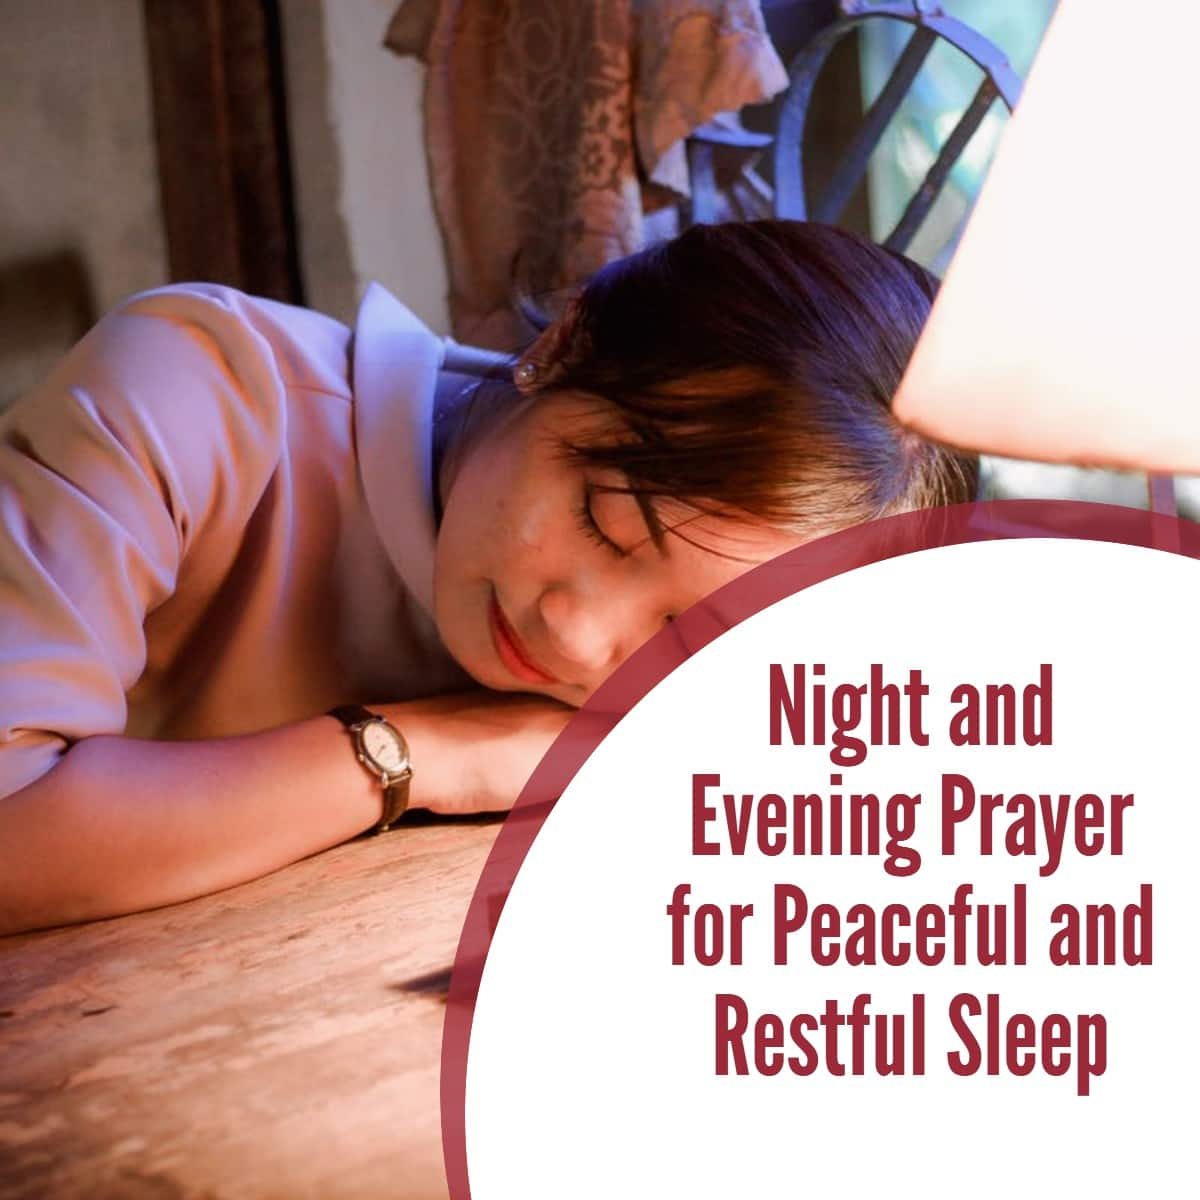 Night Prayer for Peaceful and Restful Sleep